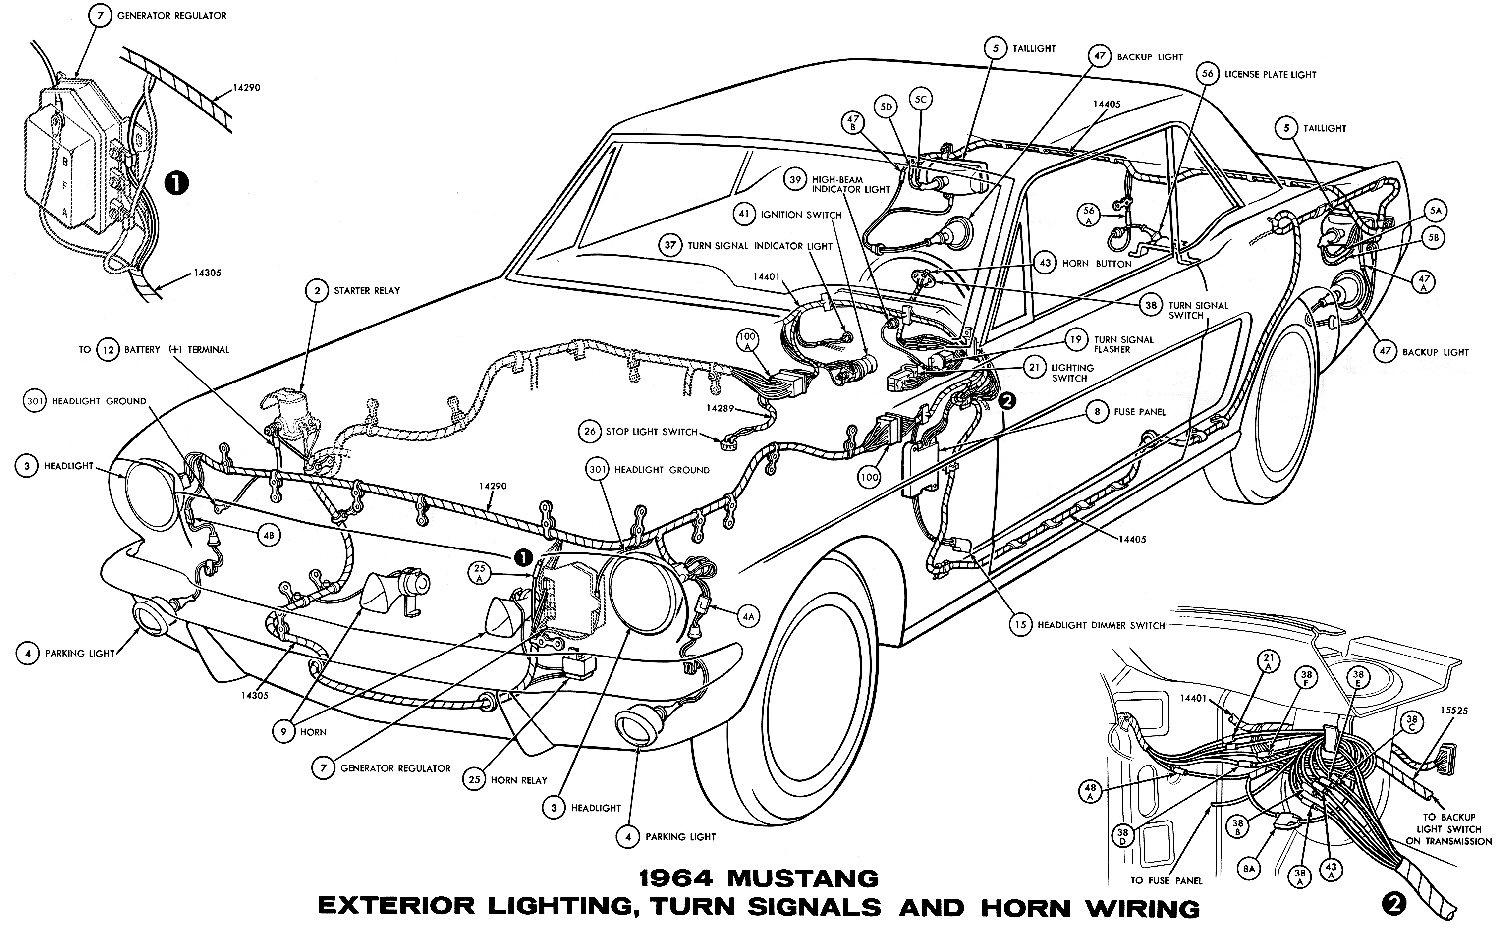 1964 Mustang Wiring Diagrams Average Joe Restoration Jaguar Diagram 64 Sm1964h Exterior Lighting Turn Signals And Horns Pictorial Or Schematic